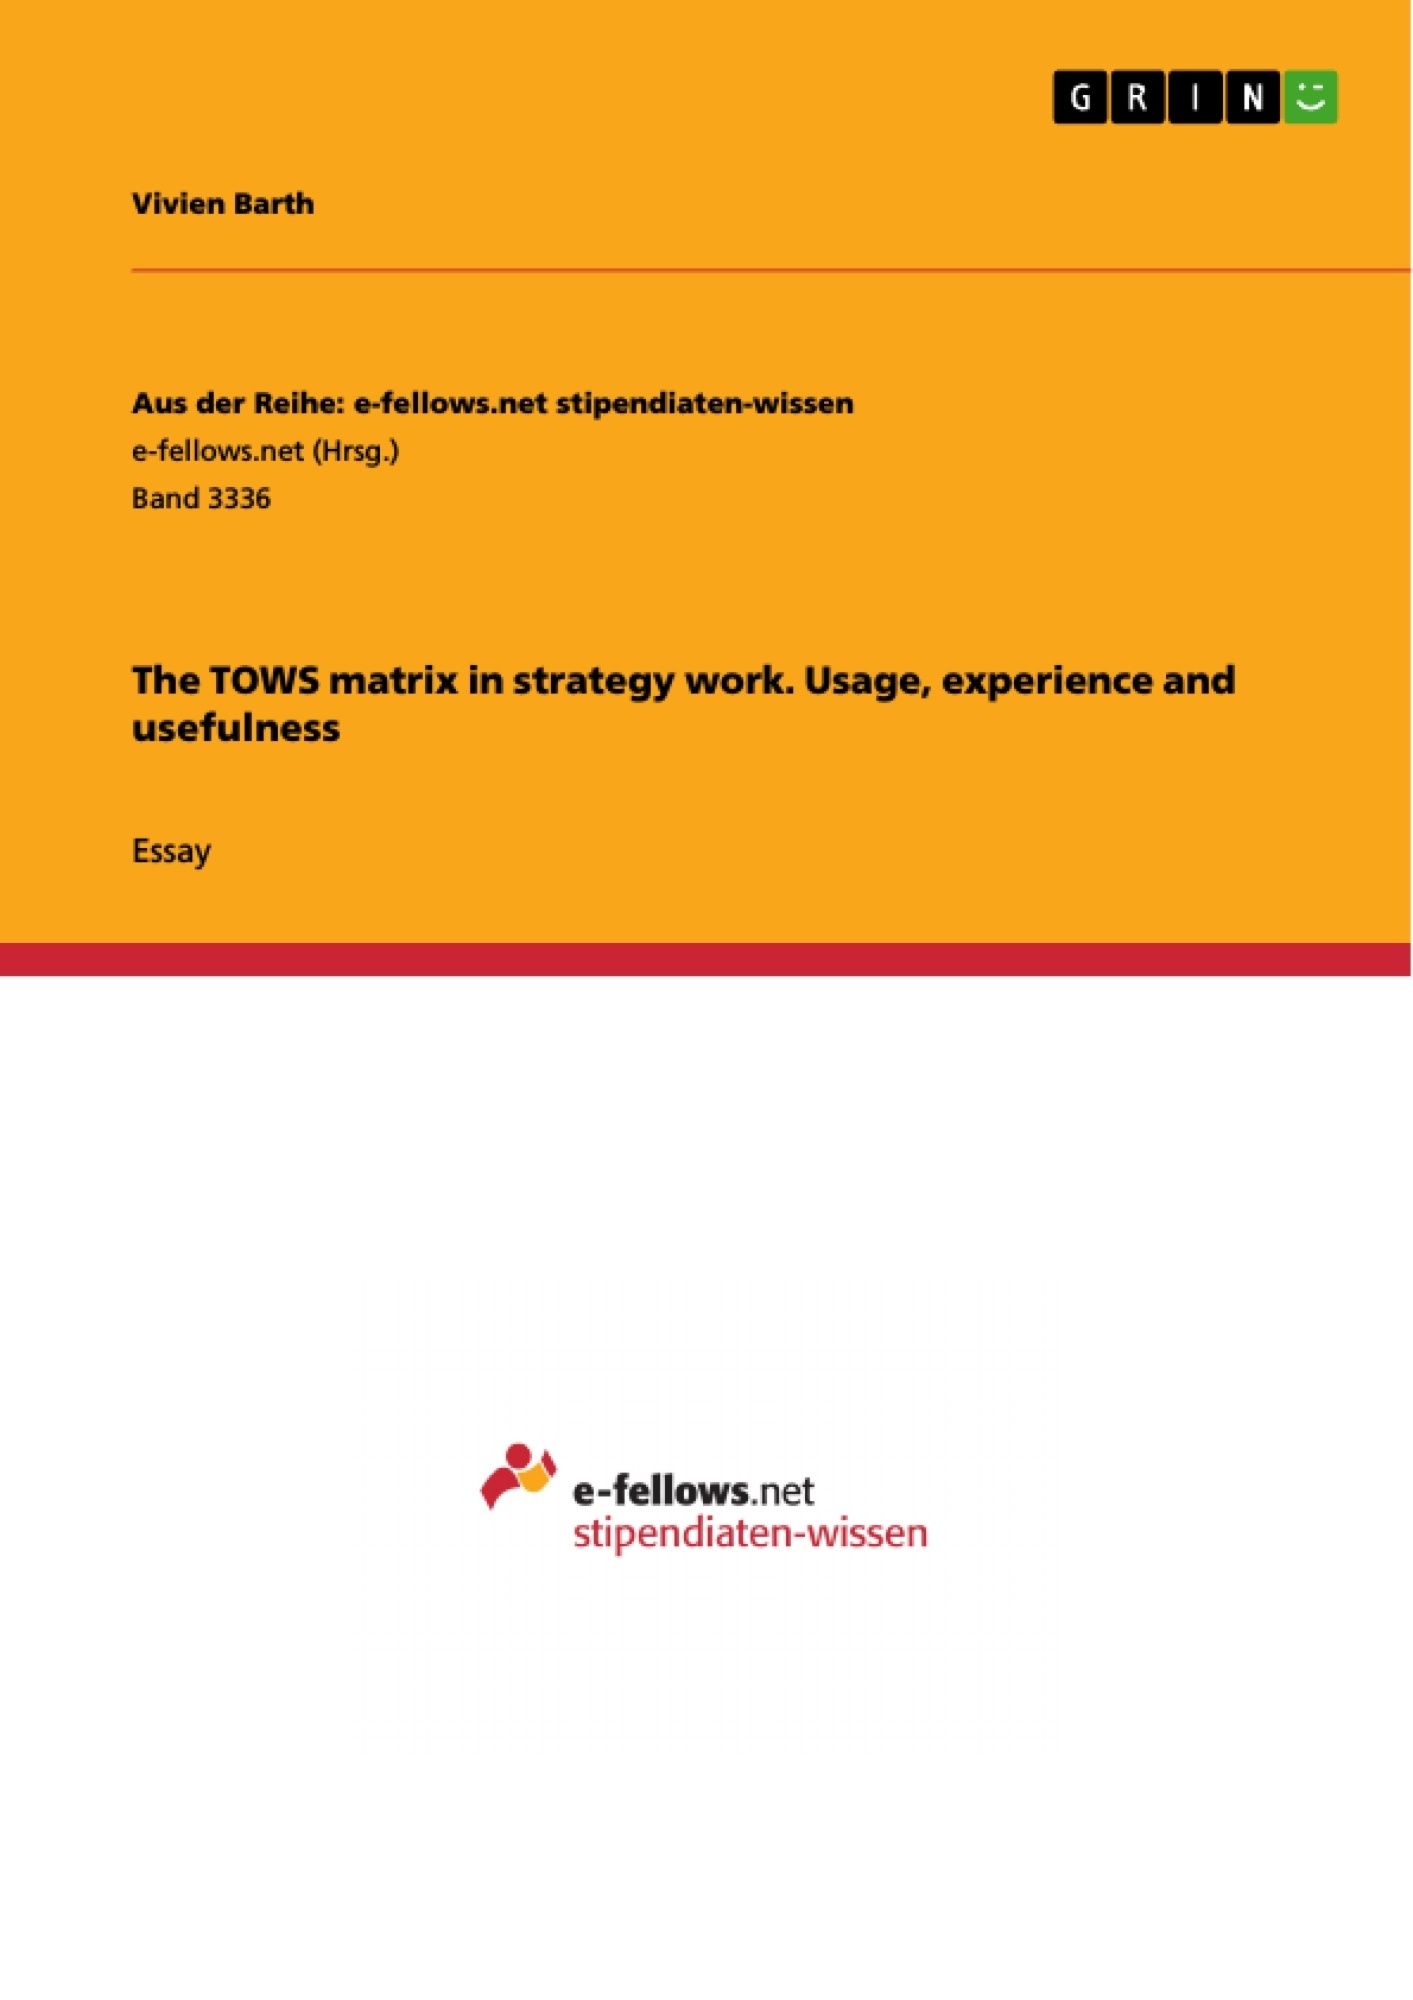 Title: The TOWS matrix in strategy work. Usage, experience and usefulness